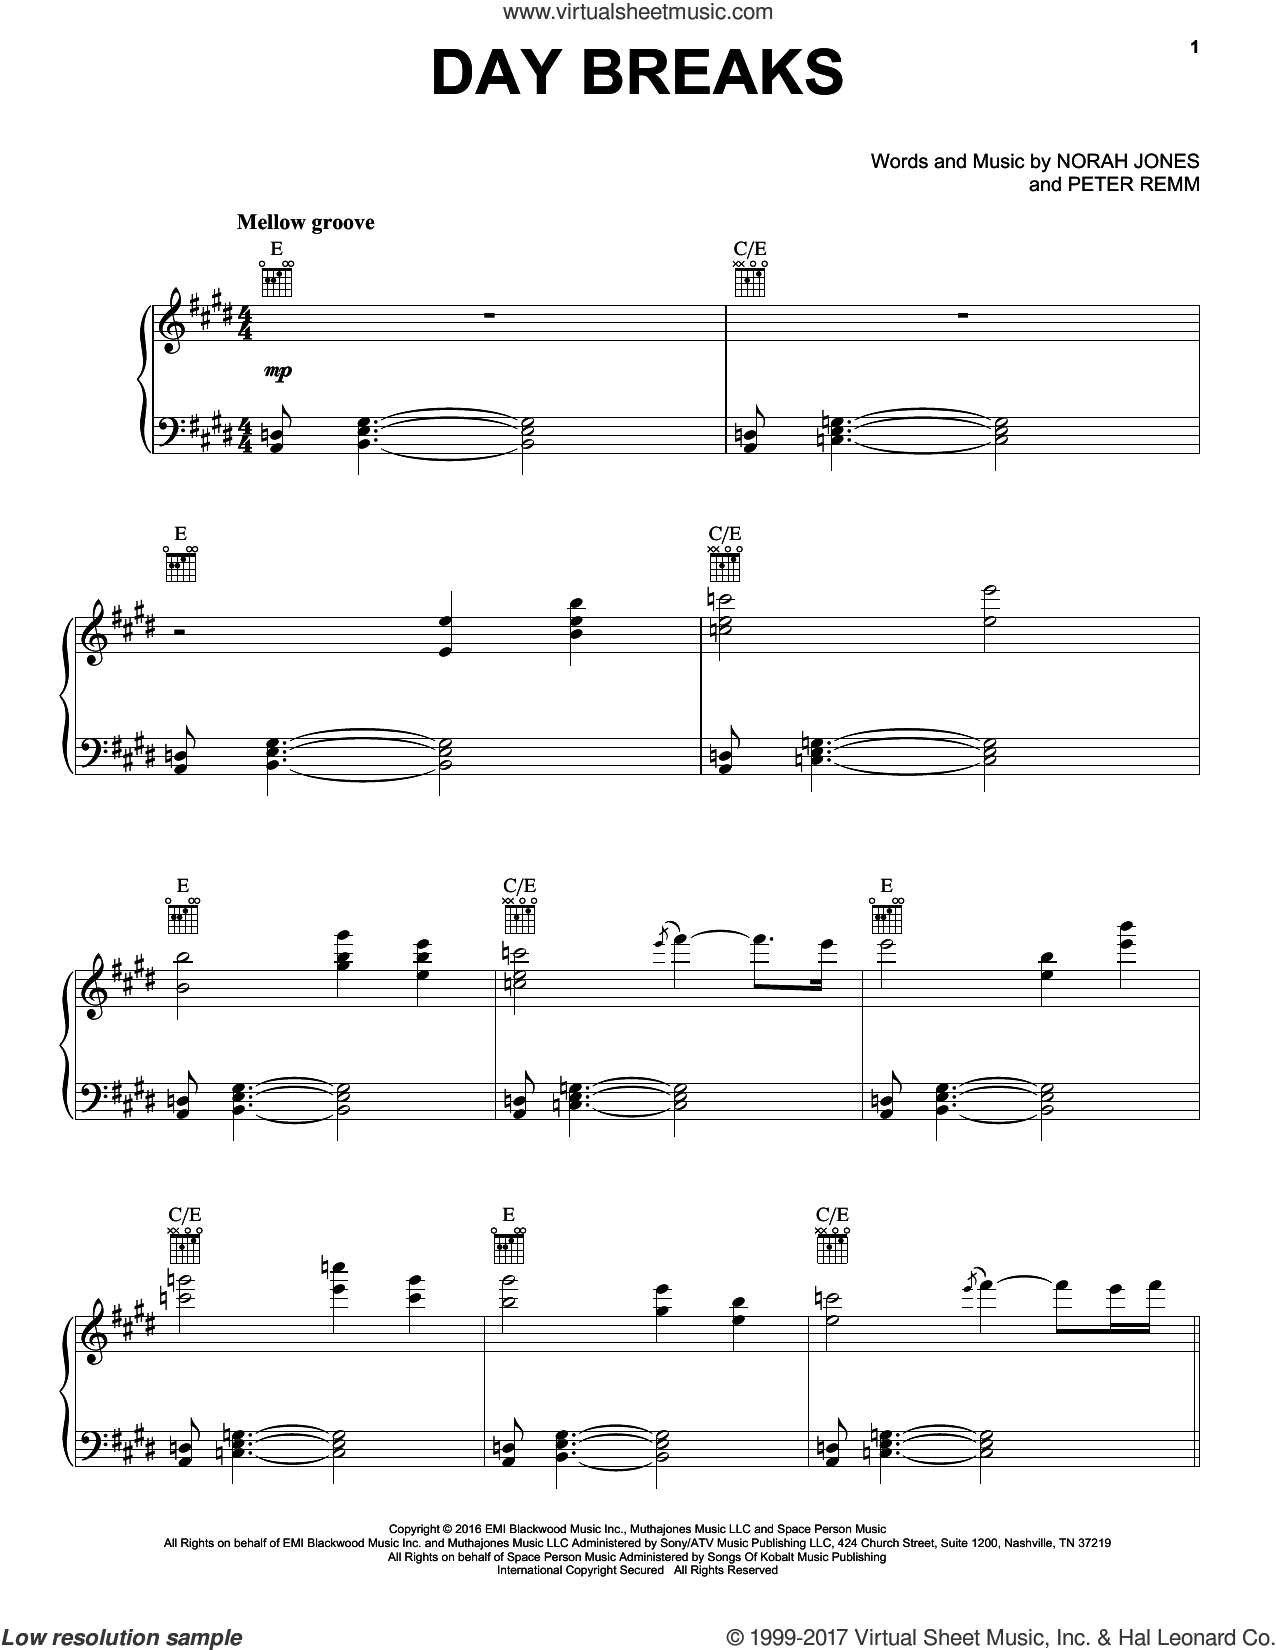 Day Breaks sheet music for voice, piano or guitar by Peter Remm and Norah Jones. Score Image Preview.